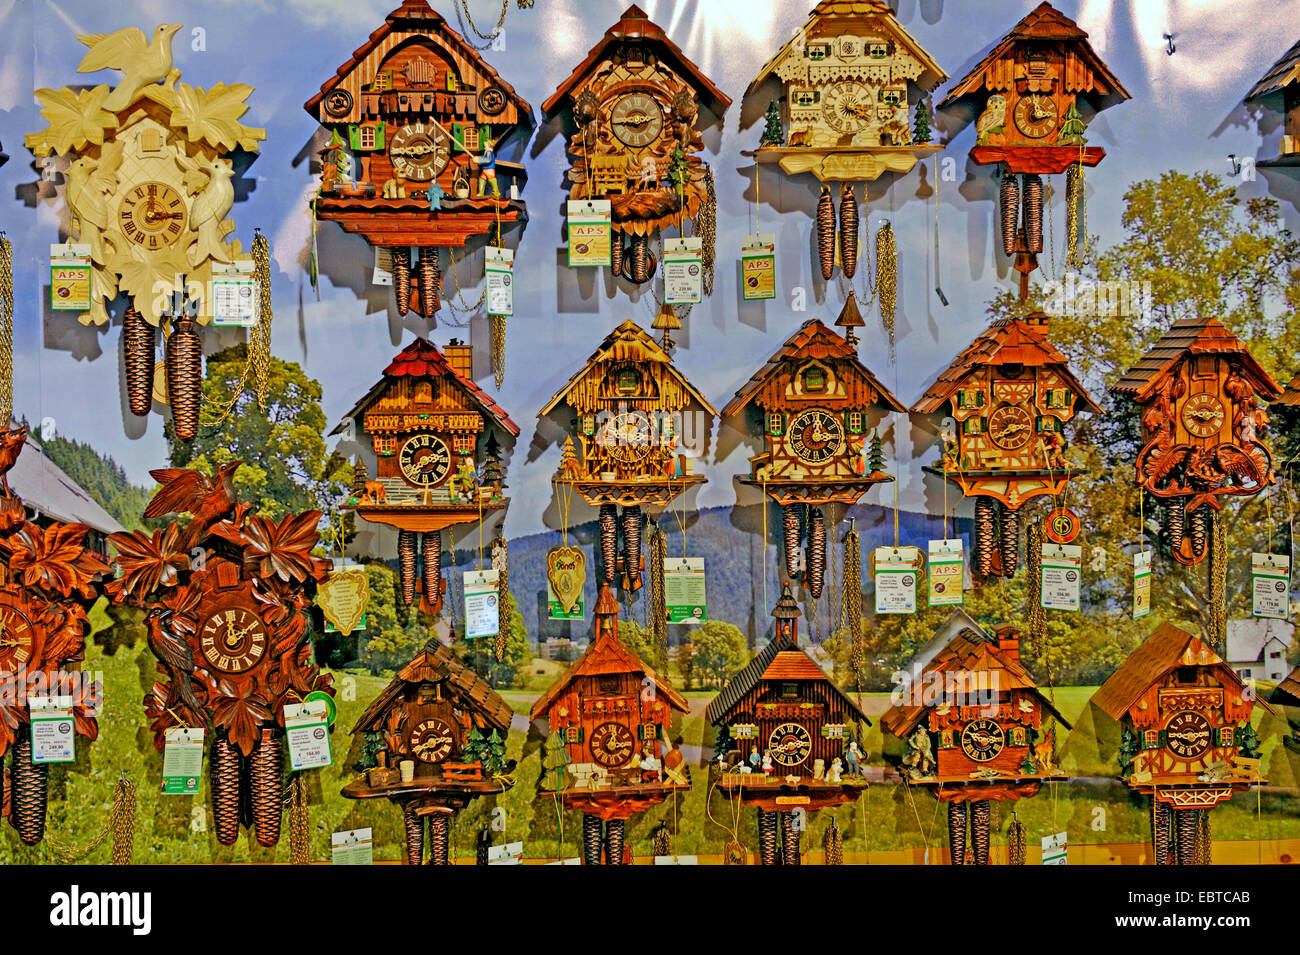 a lot of cockoo clocks in a shop window, Germany, Baden-Wuerttemberg, Black Forest, Triberg - Stock Image